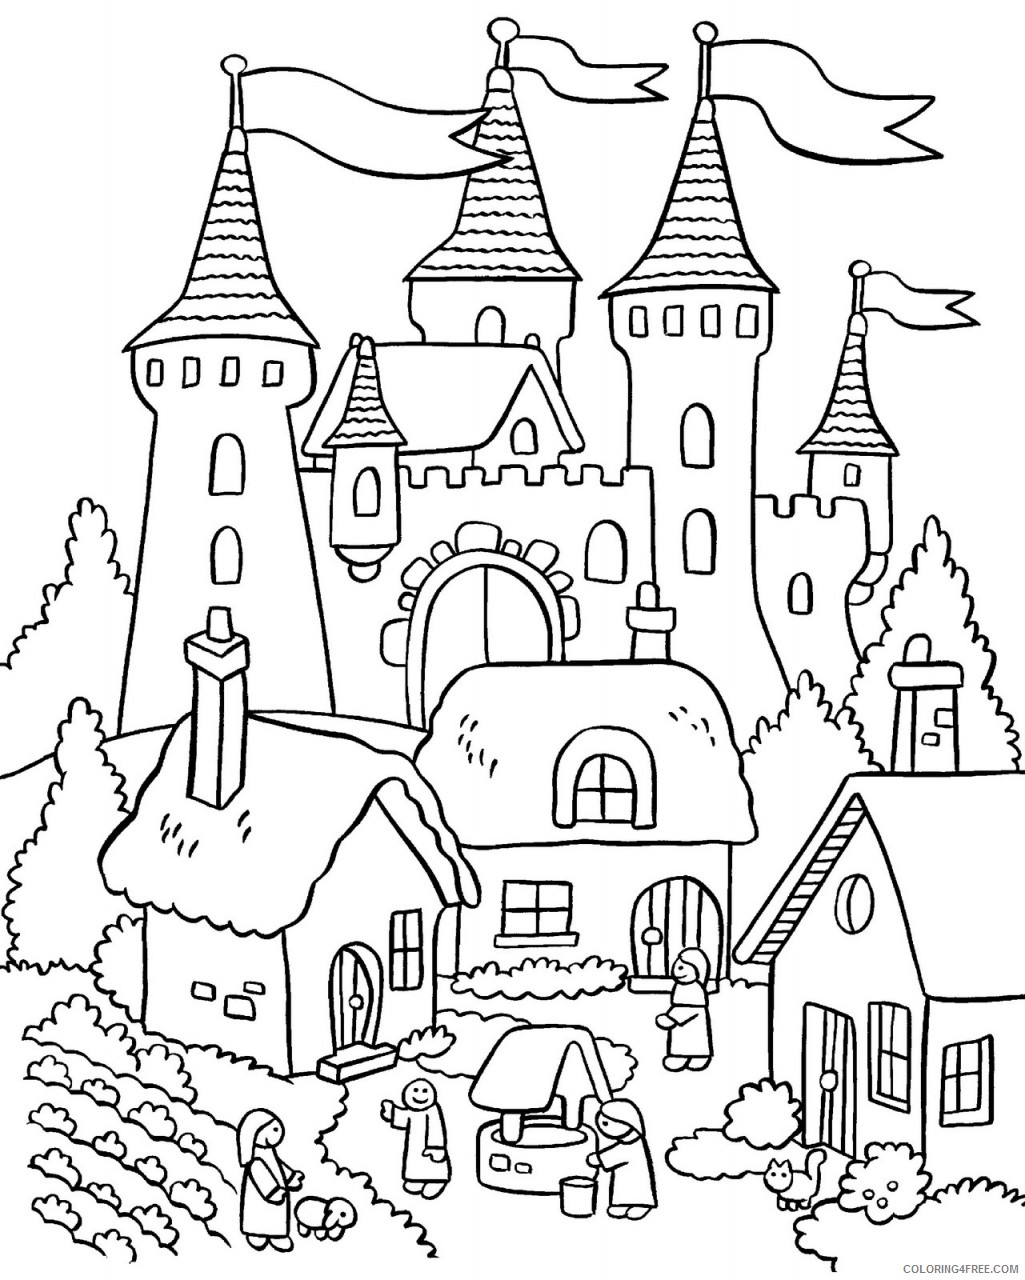 house coloring pages with royal palace Coloring4free